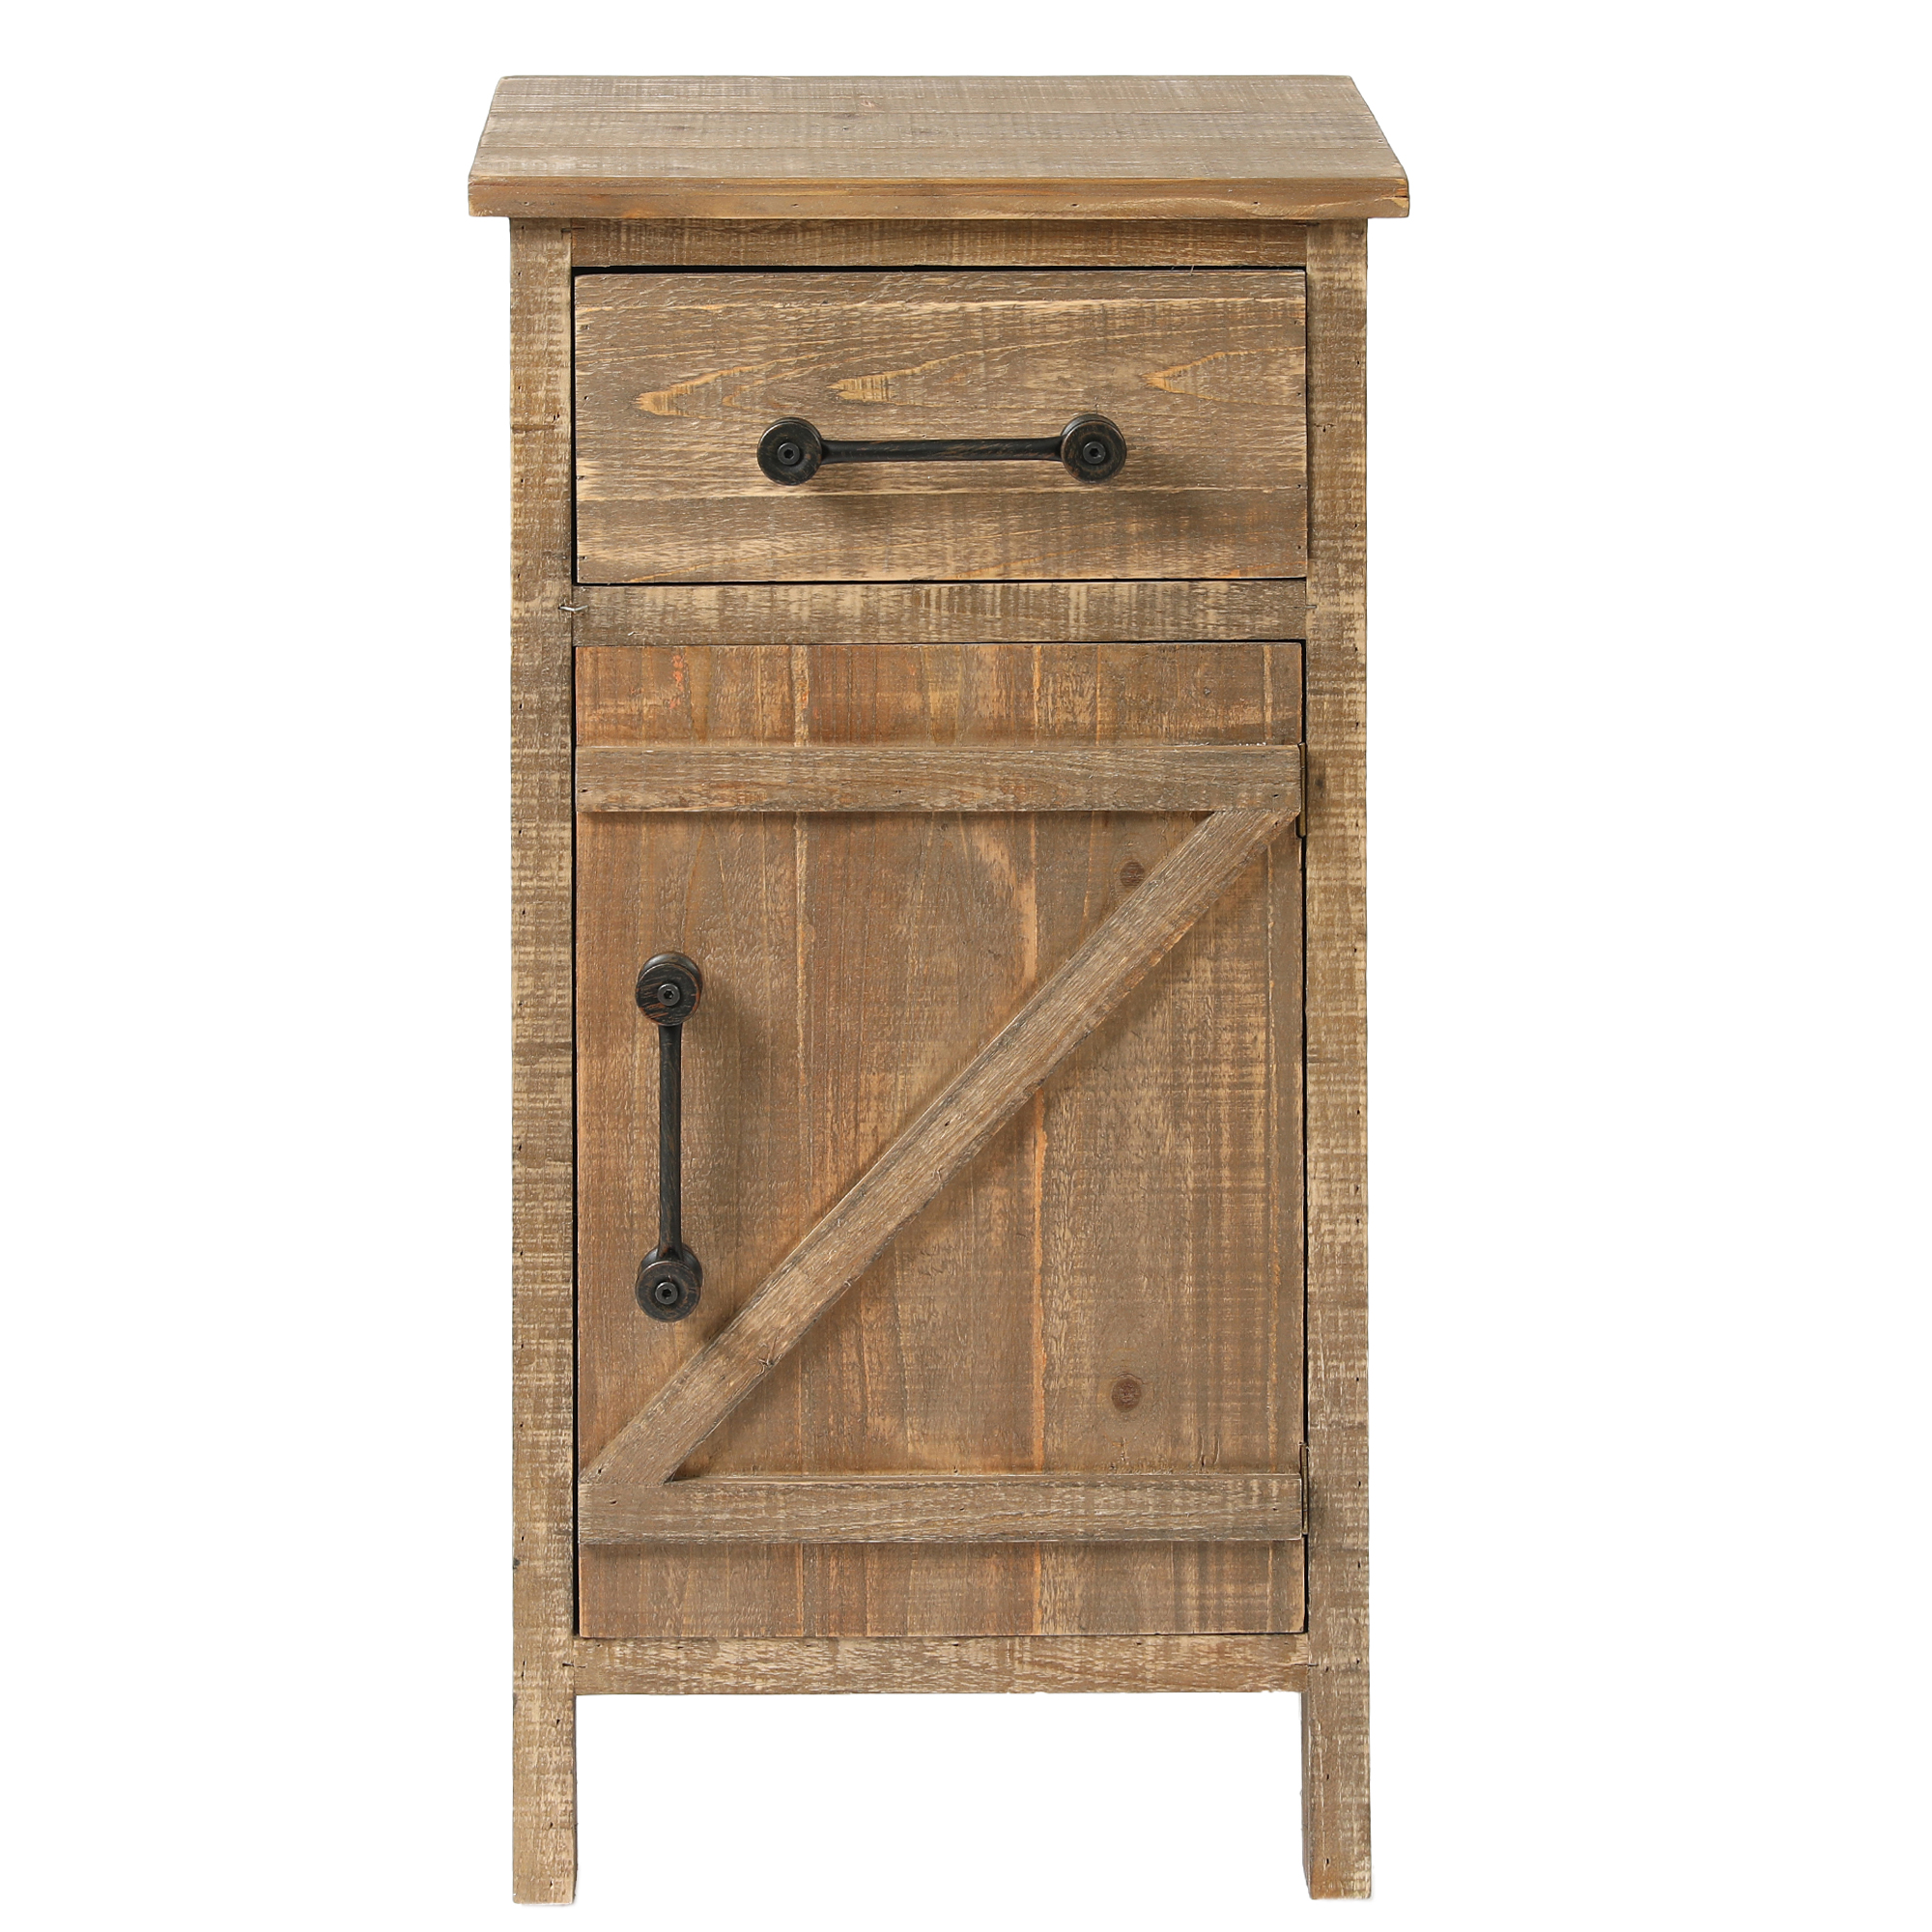 Luxen Home WH171 Rustic Wood Console Cabinet  Small